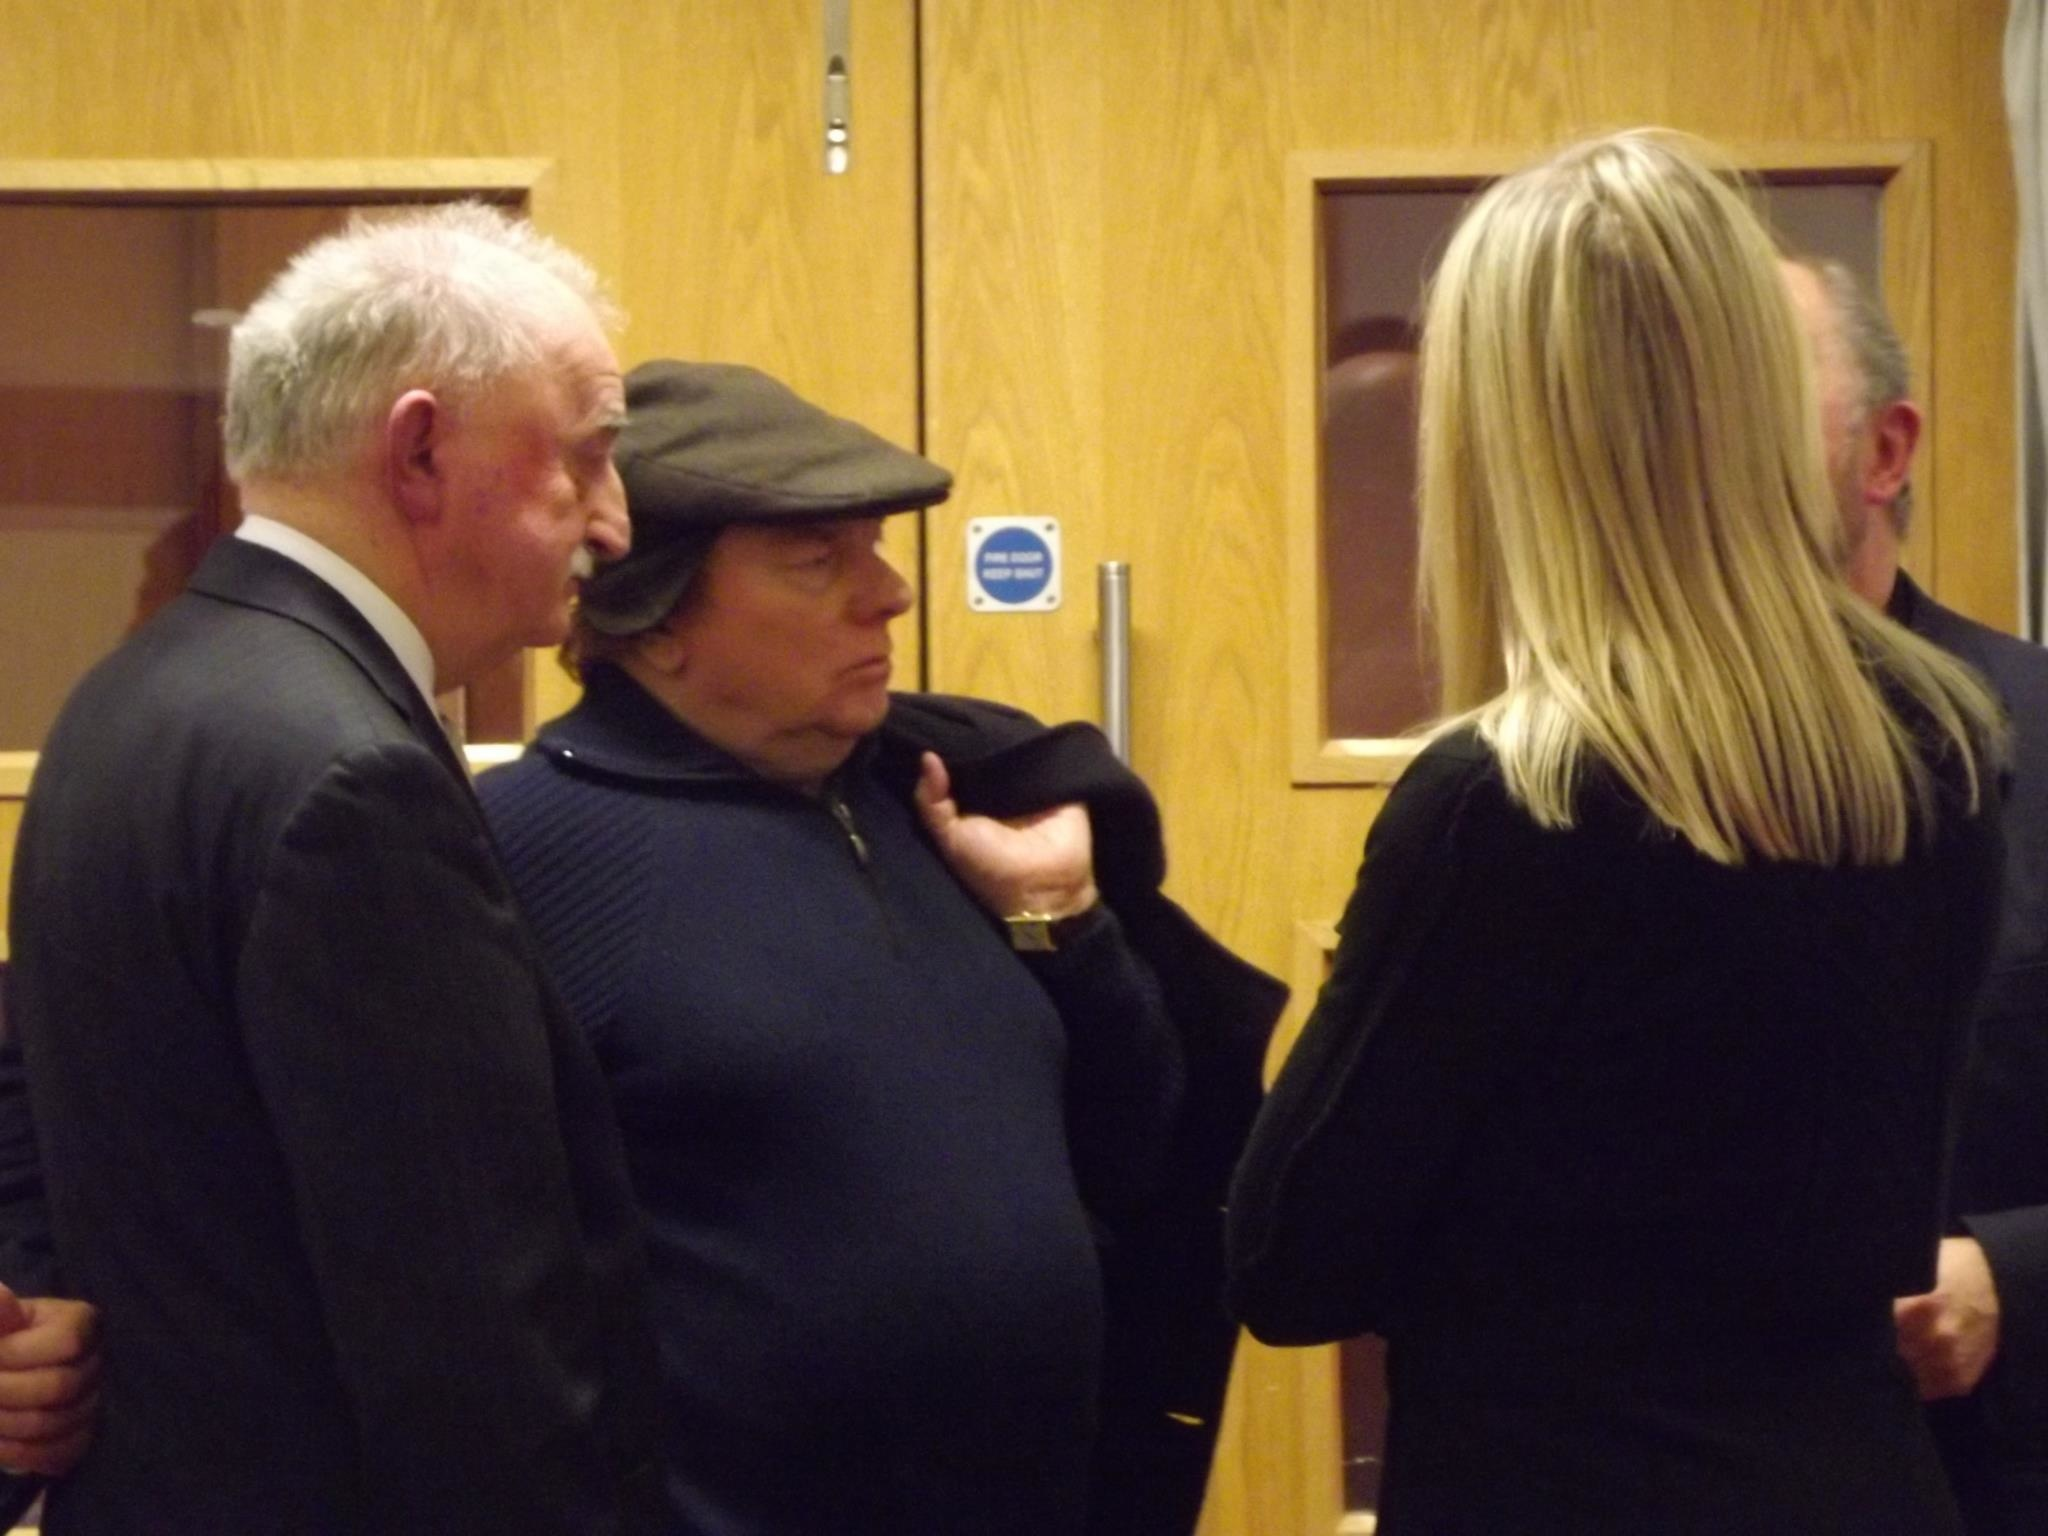 Van Morrison with Dr Ian Adamson at the launch of Slí Cholmcille at the Linenhall Library in Belfast